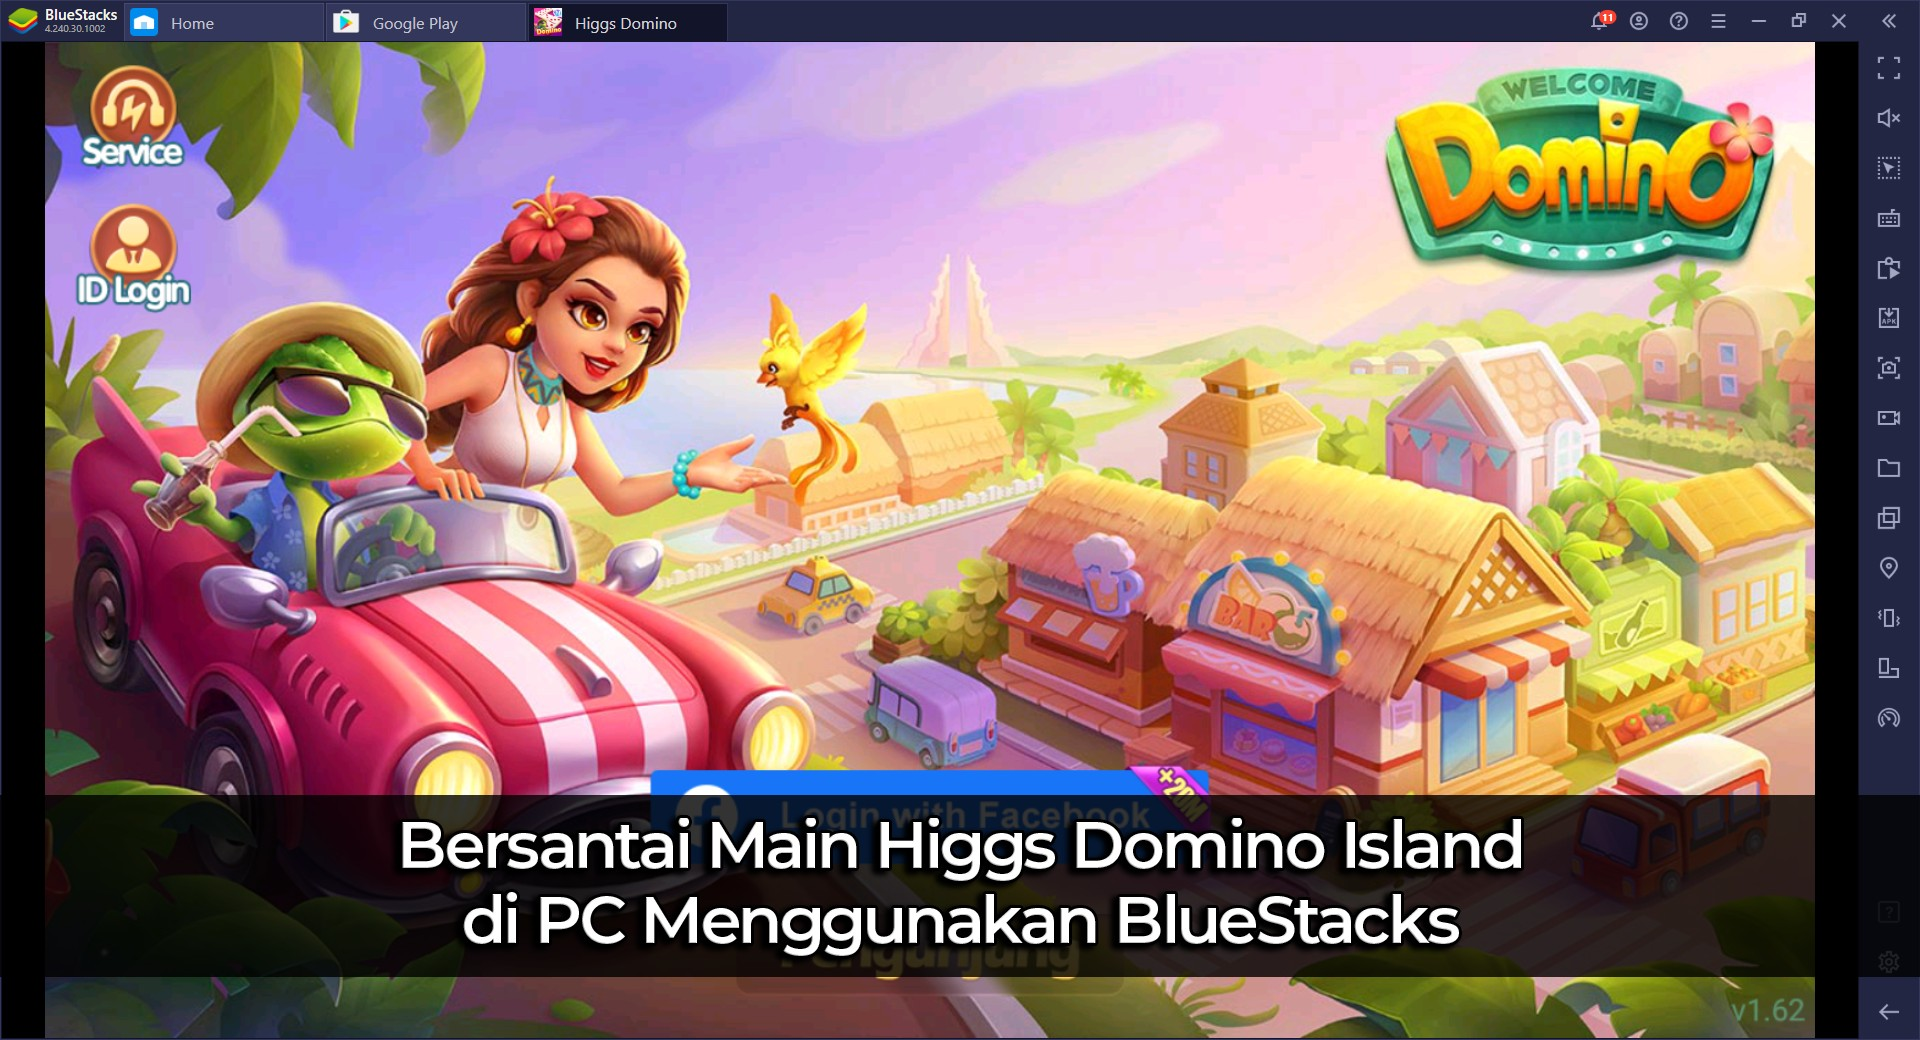 Bersantai Main Higgs Domino Island di PC Menggunakan BlueStacks